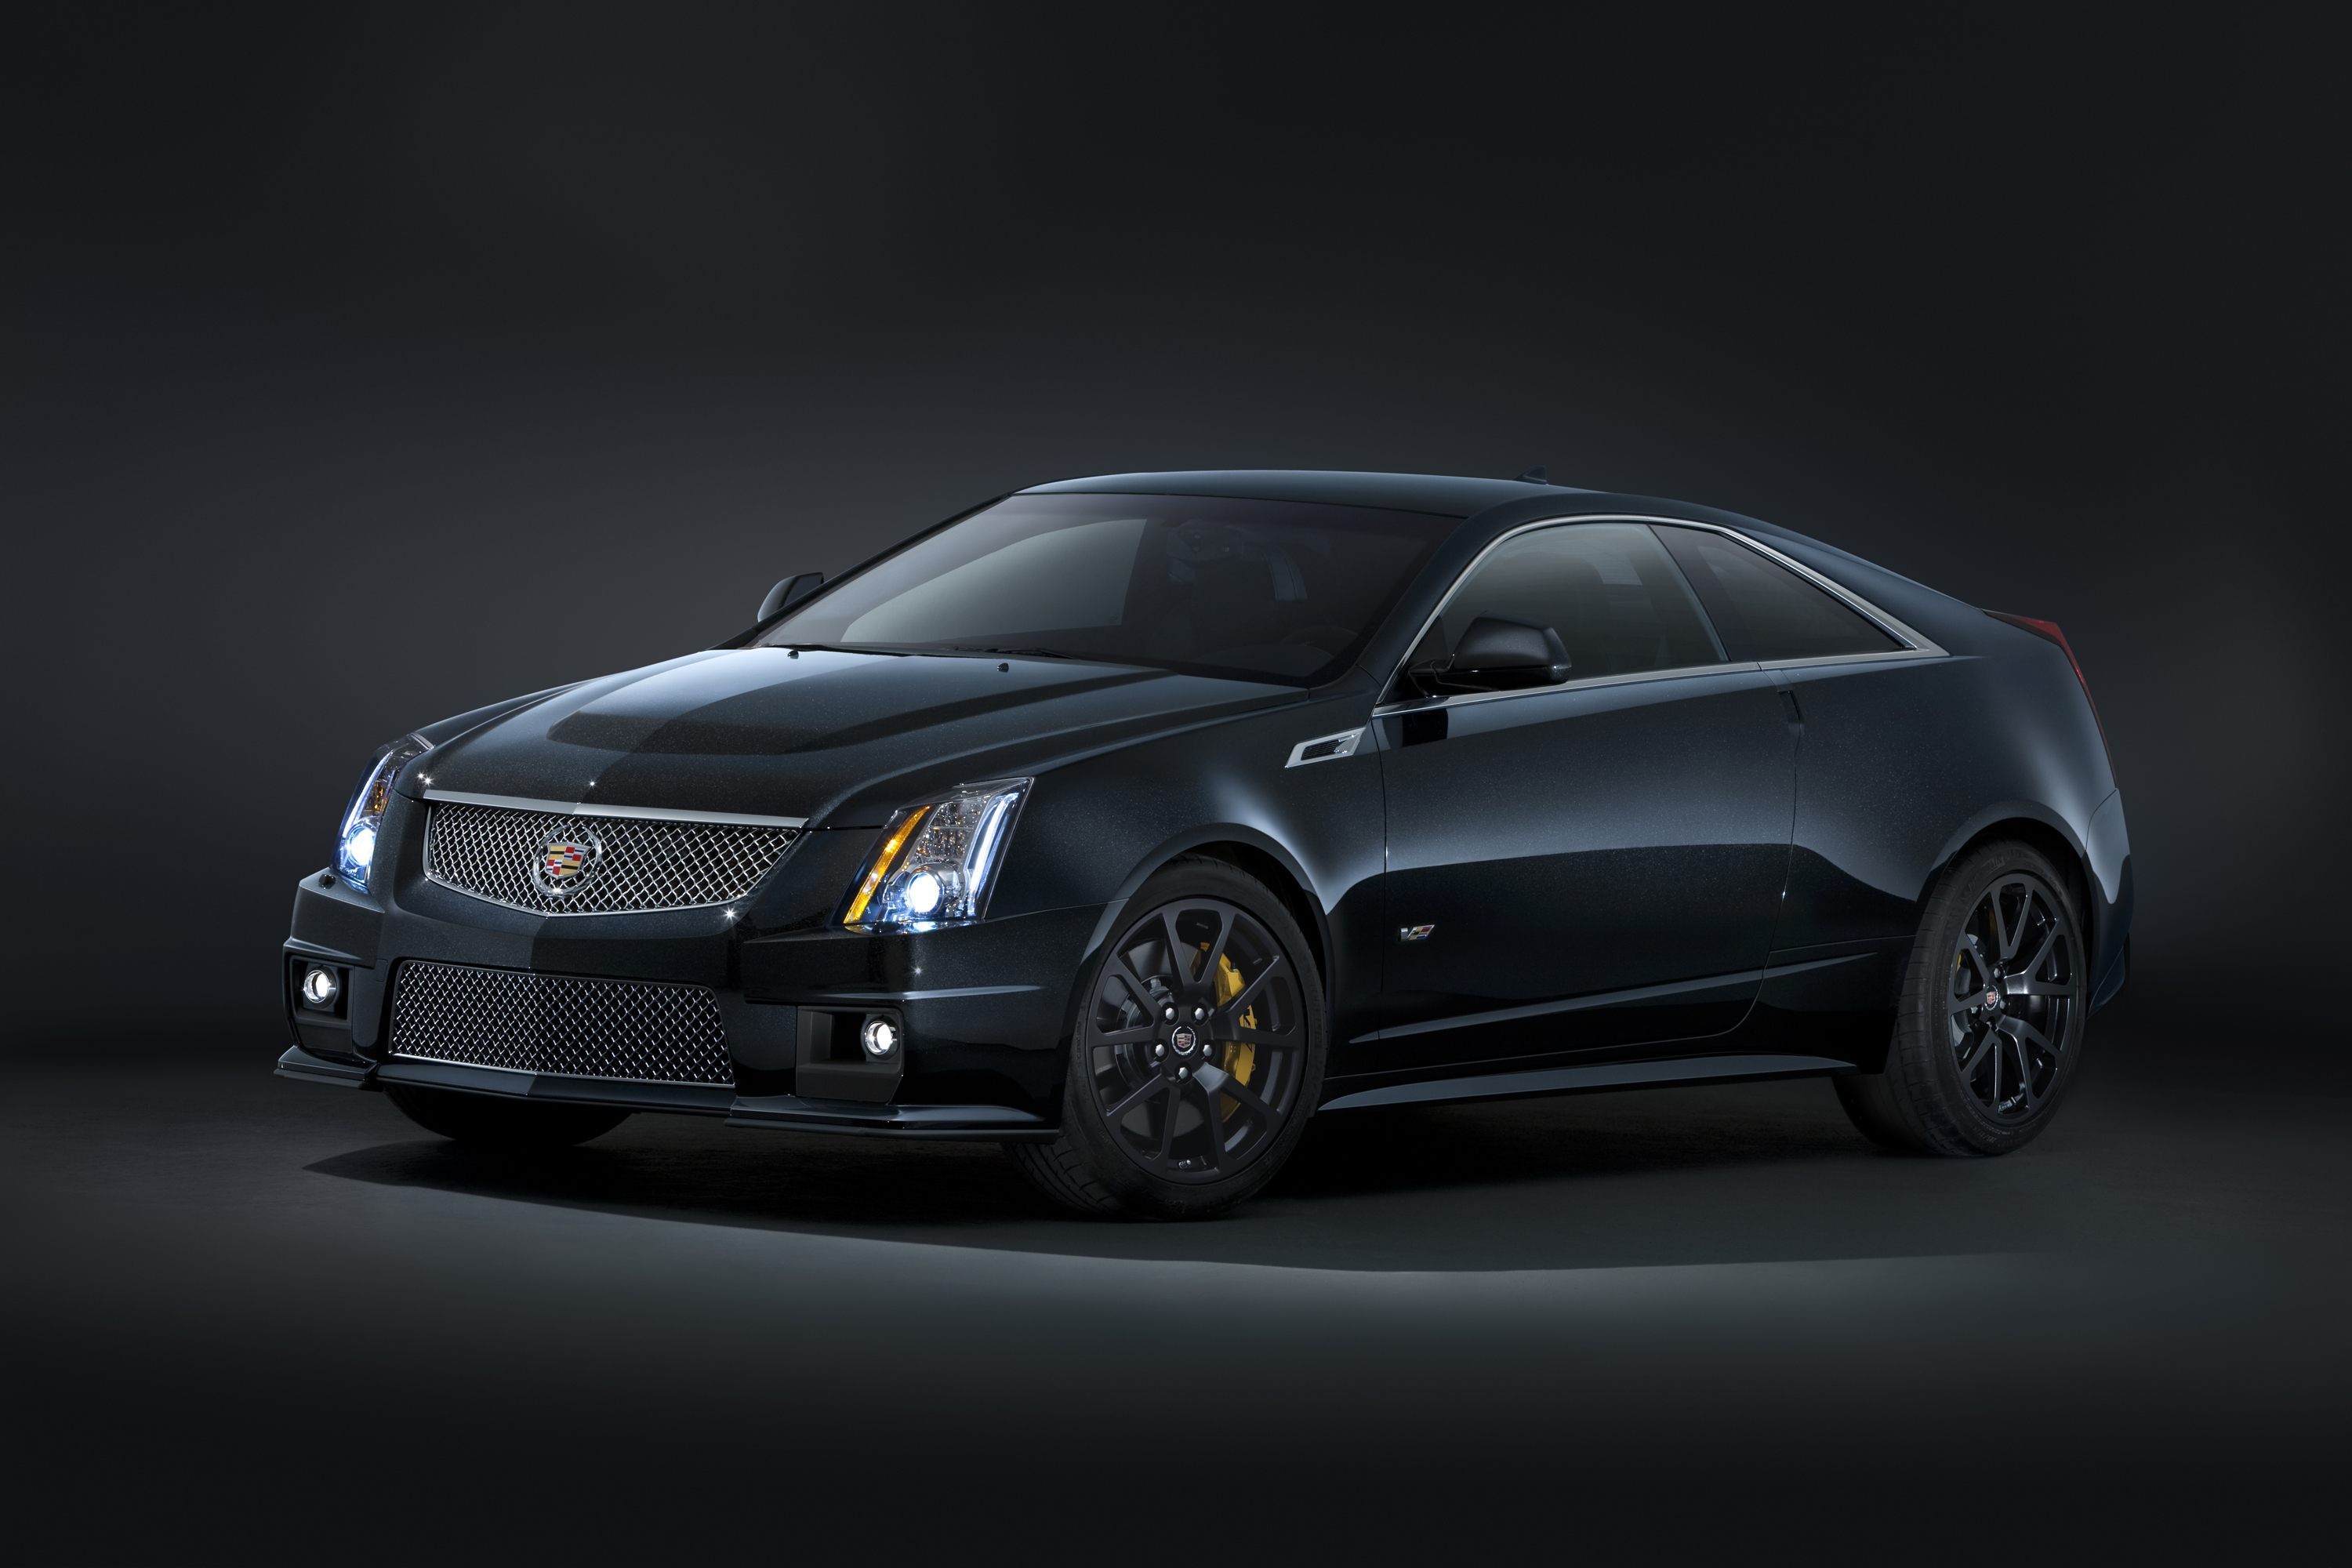 cadillac ratings cts images coupe news msrp with amazing reviews